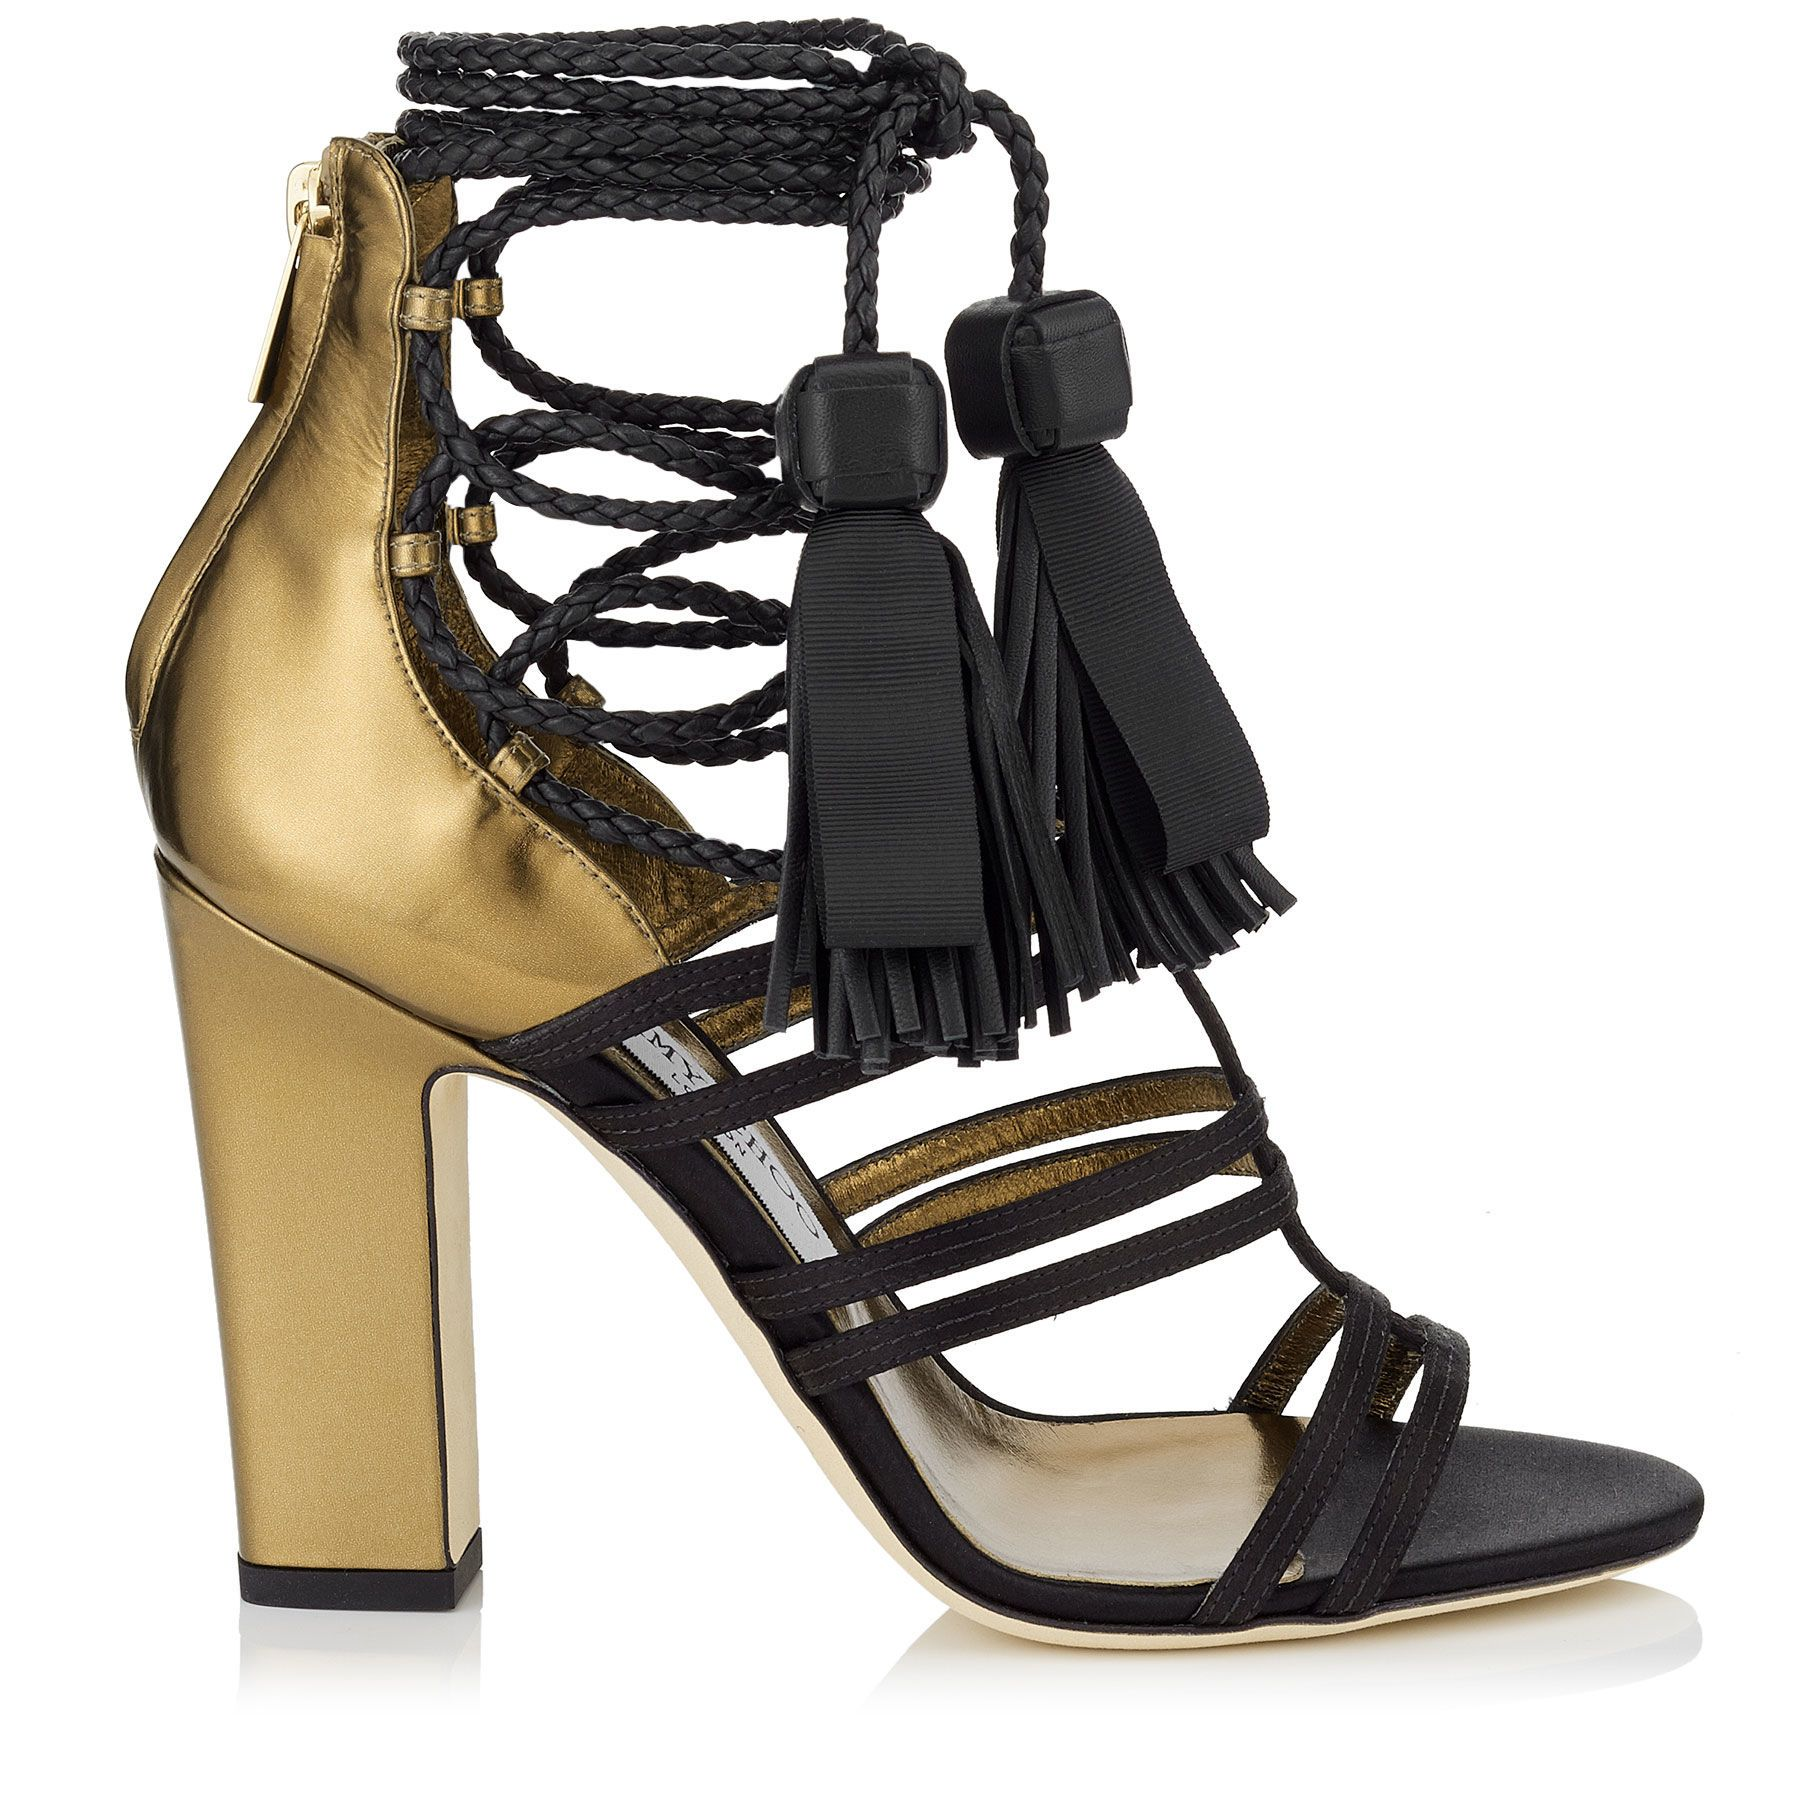 55be065ec79 Jimmy Choo DIAMOND 100 $995.00 Black Satin and Honey Gold Mirror Leather  Sandals